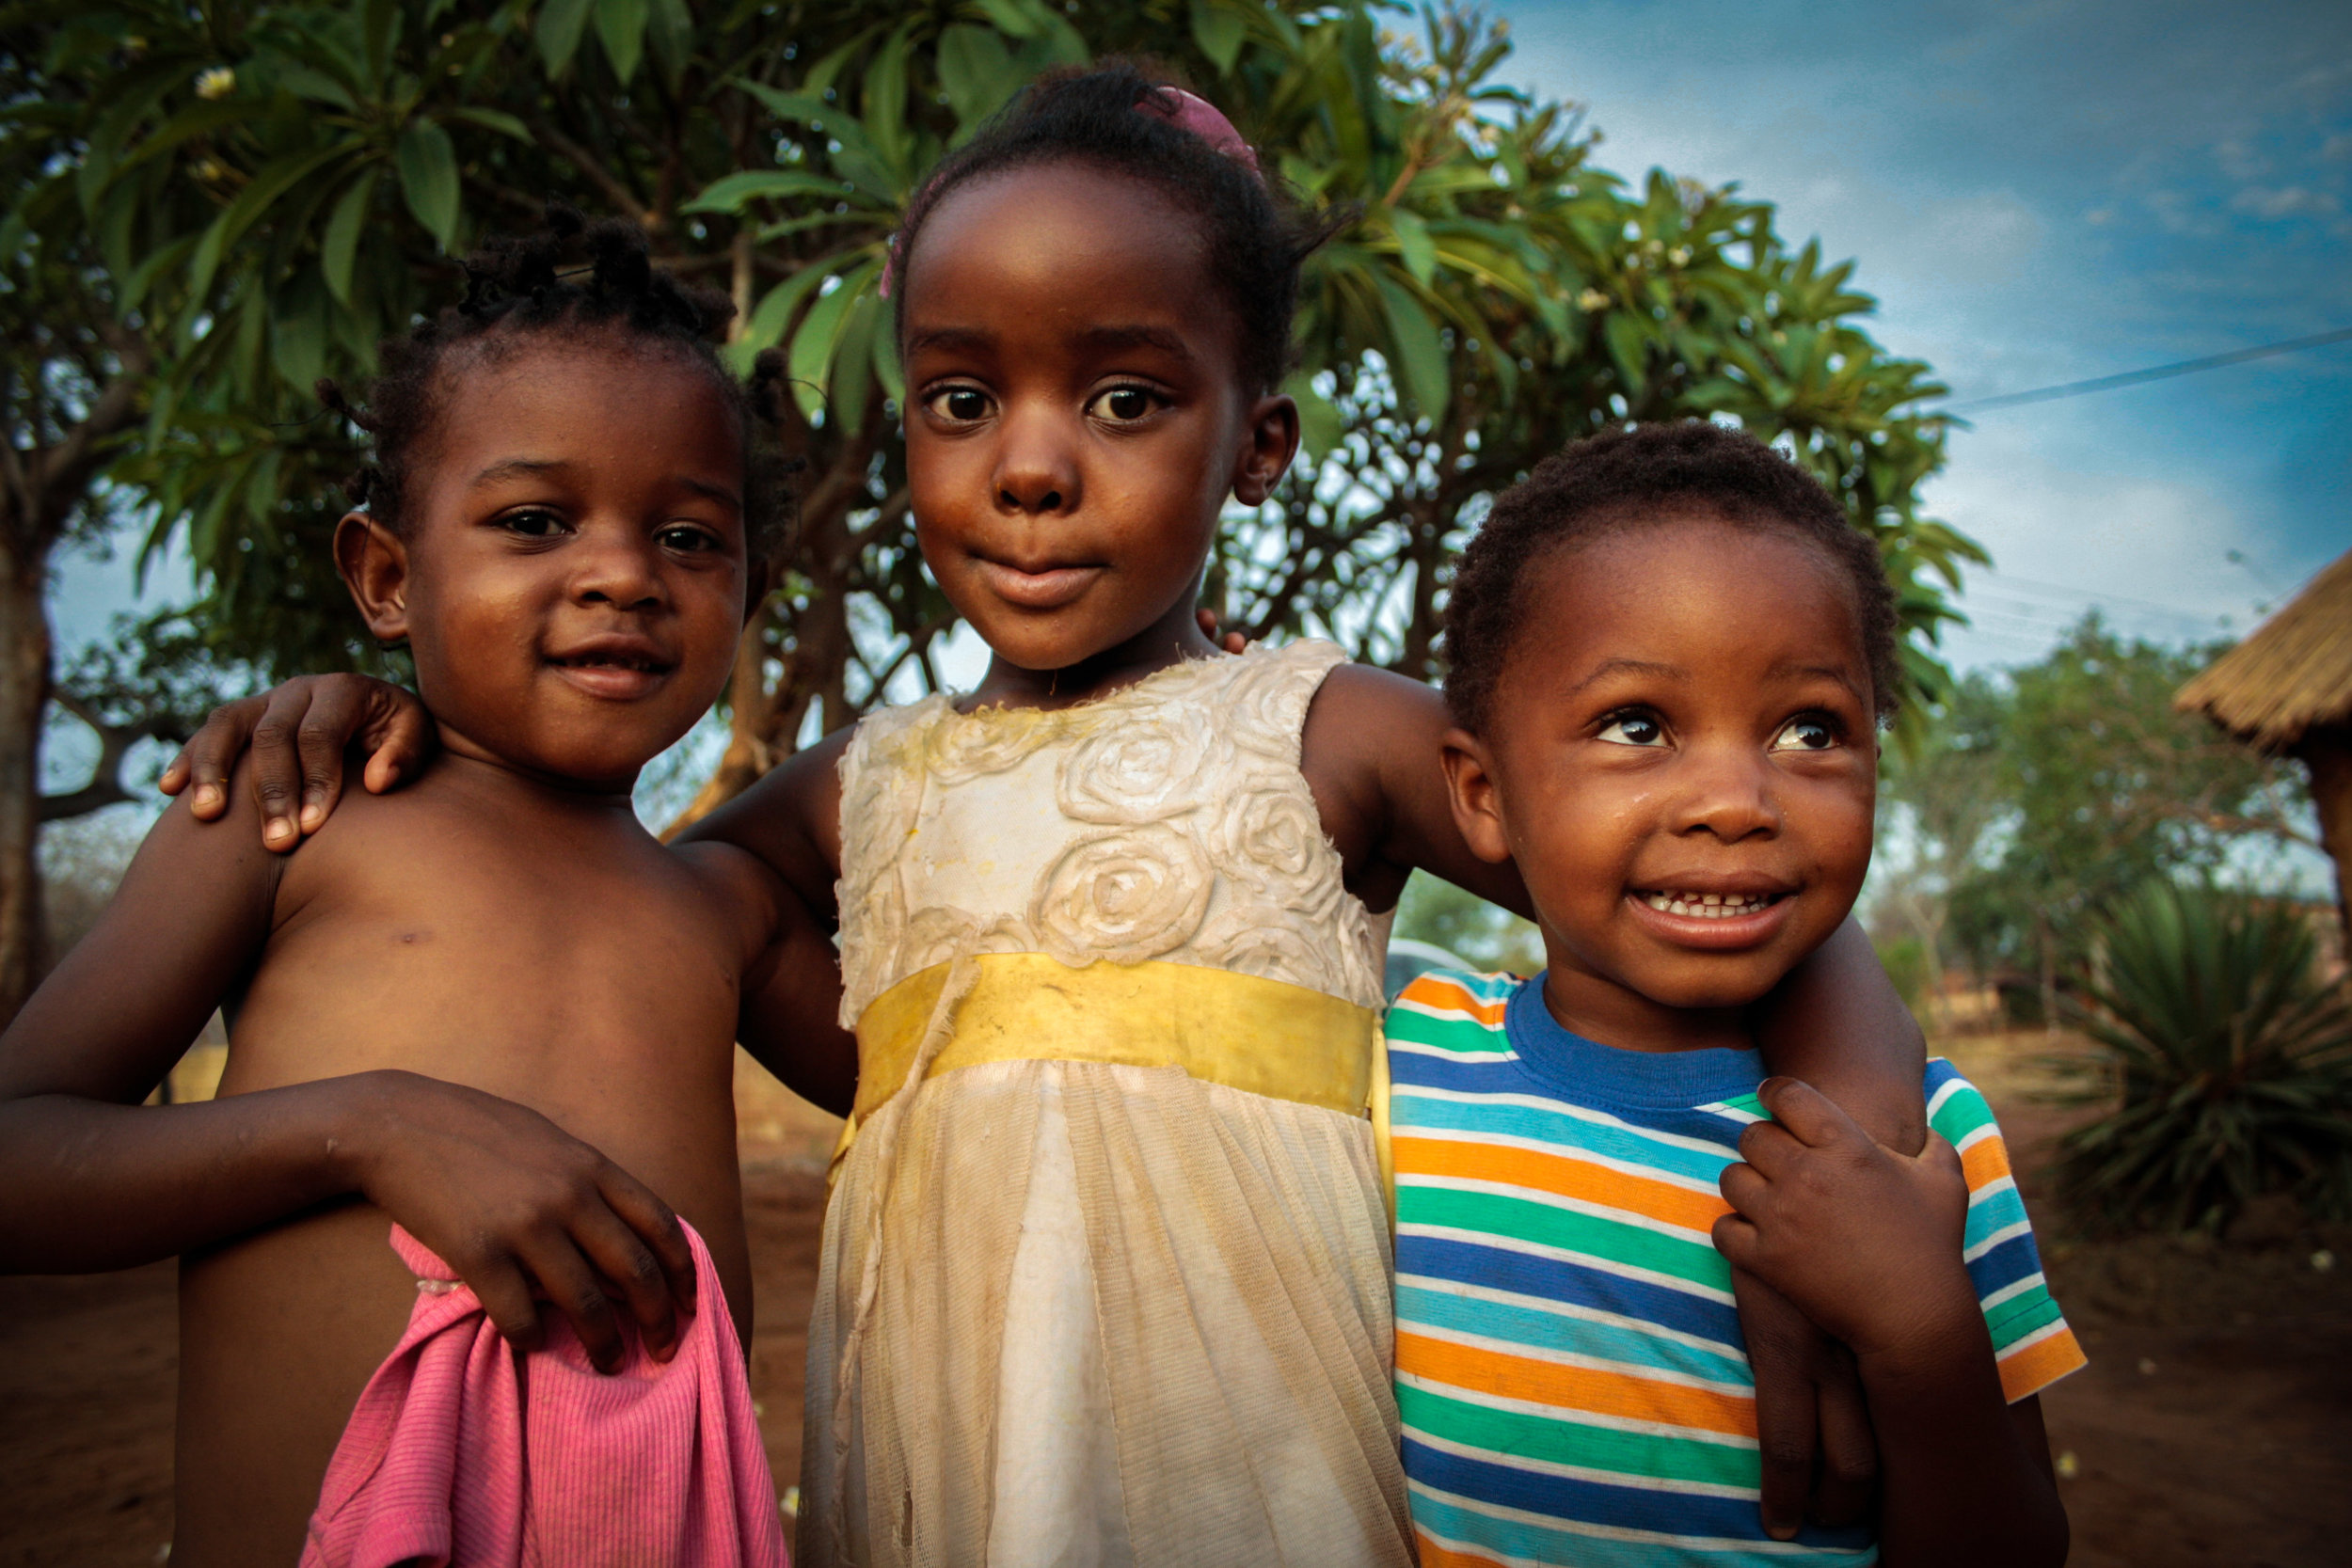 zambia 2016   the children in a family where i was invited for lunch in a small village nearby livingstone. after doing shopping together in the village, we prepared lunch together with the parents of these children, while they were running around and playing with the dogs.